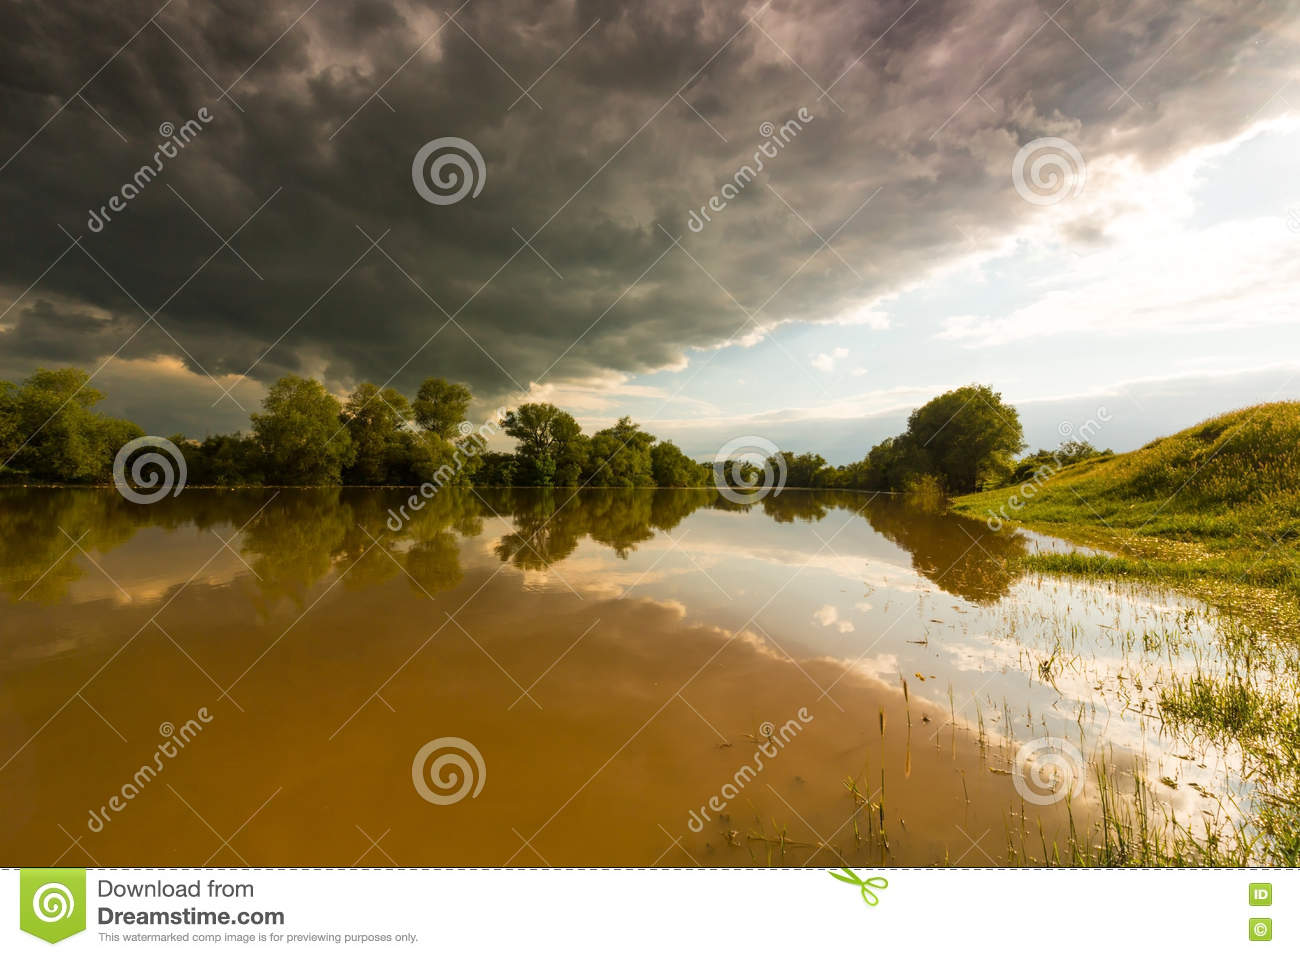 Ominous stormy sky over natural river